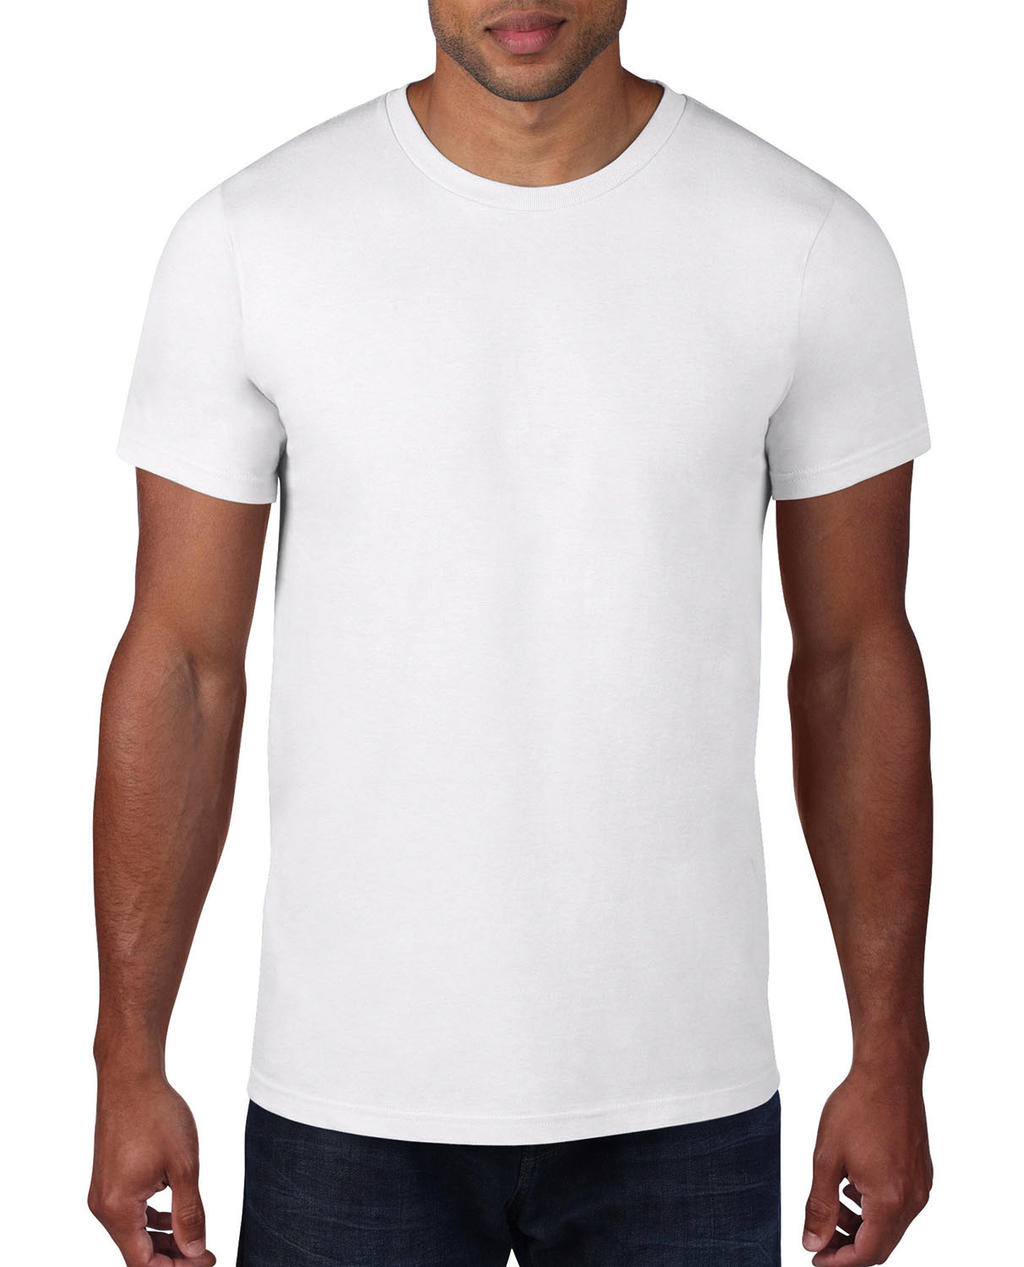 Adult Fashion Basic Tee